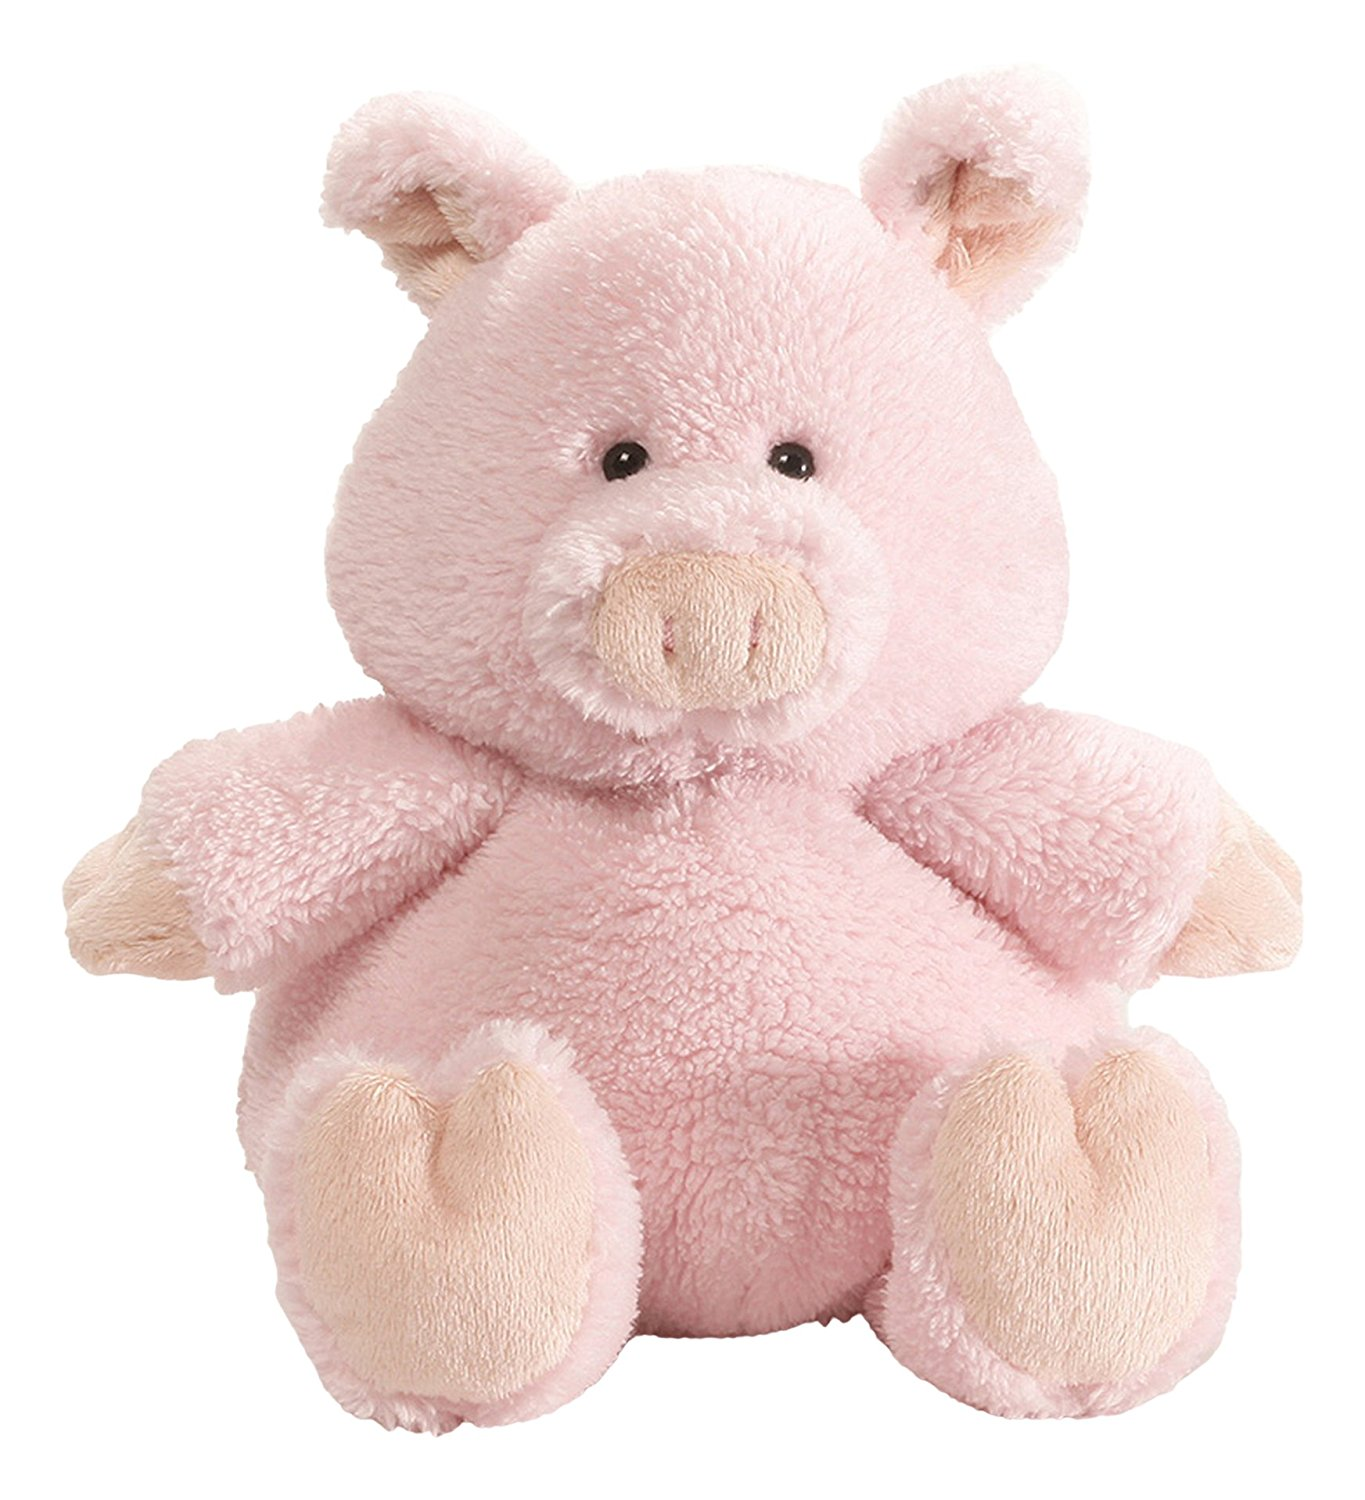 Cheap Gund Stuffed Bears Find Deals On Line At Flamingo Get Quotations Mini Chub Pig Animal Plush